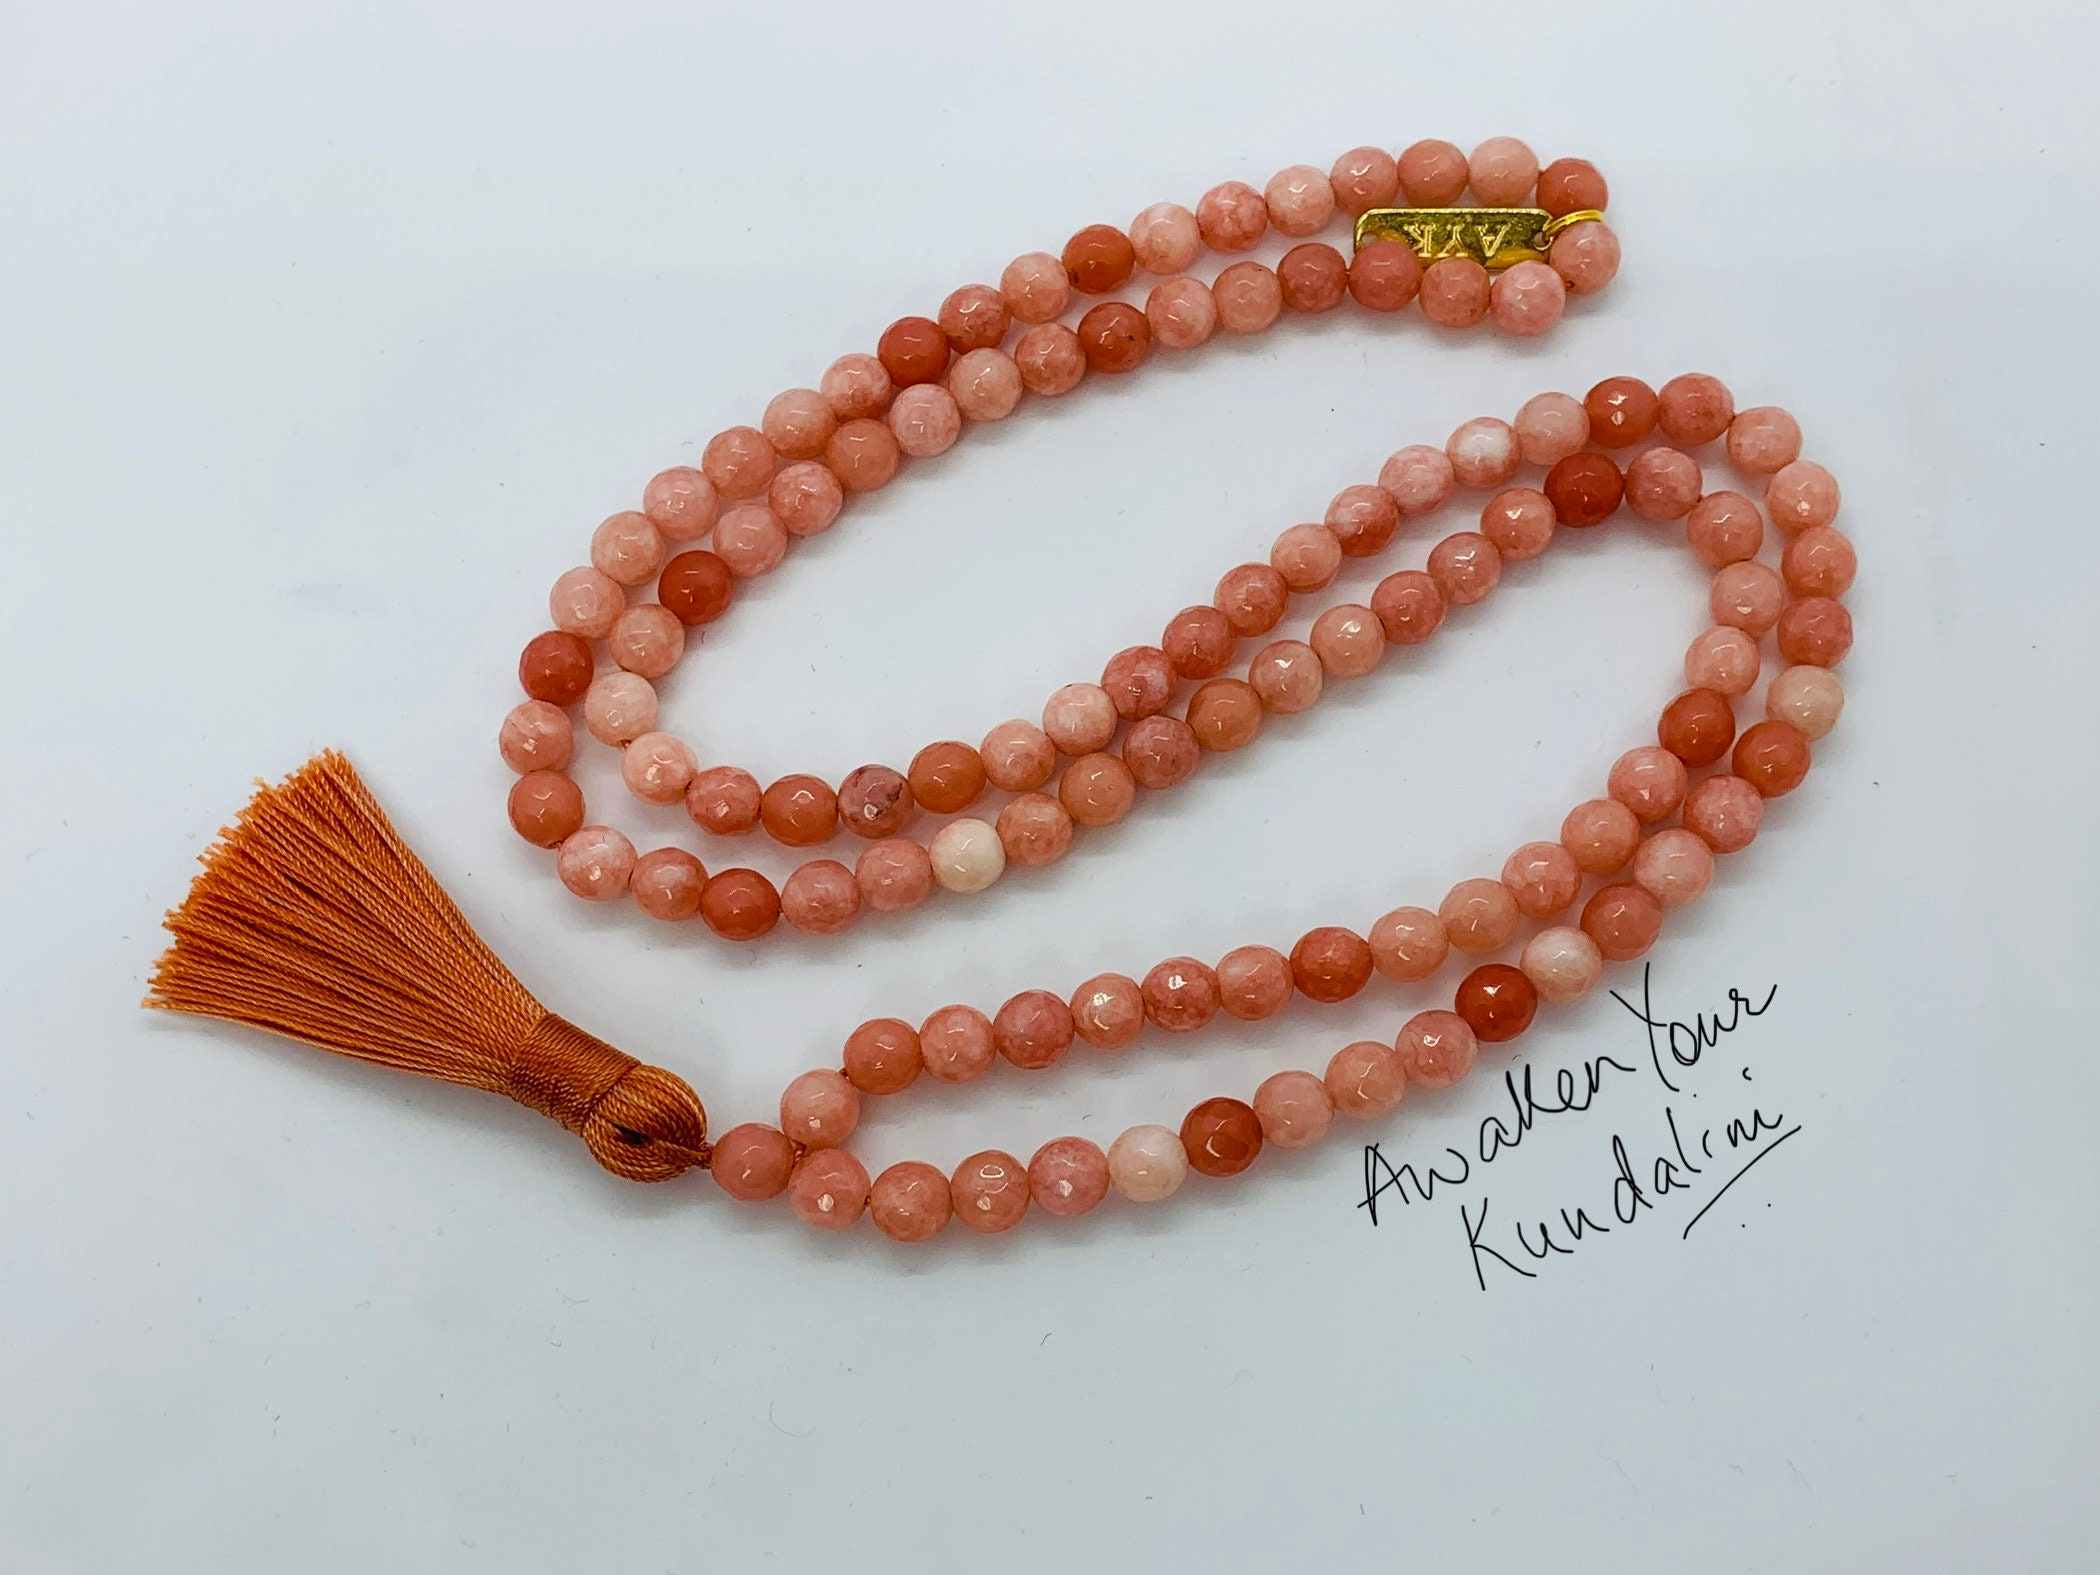 Orange Agate Necklace,108 Beads Mala Necklace,Orange Agate 6mm Beads,Stretchy,Orange Agate Bracelet,Prayer,Man,Woman,Protective,Yoga,Gift